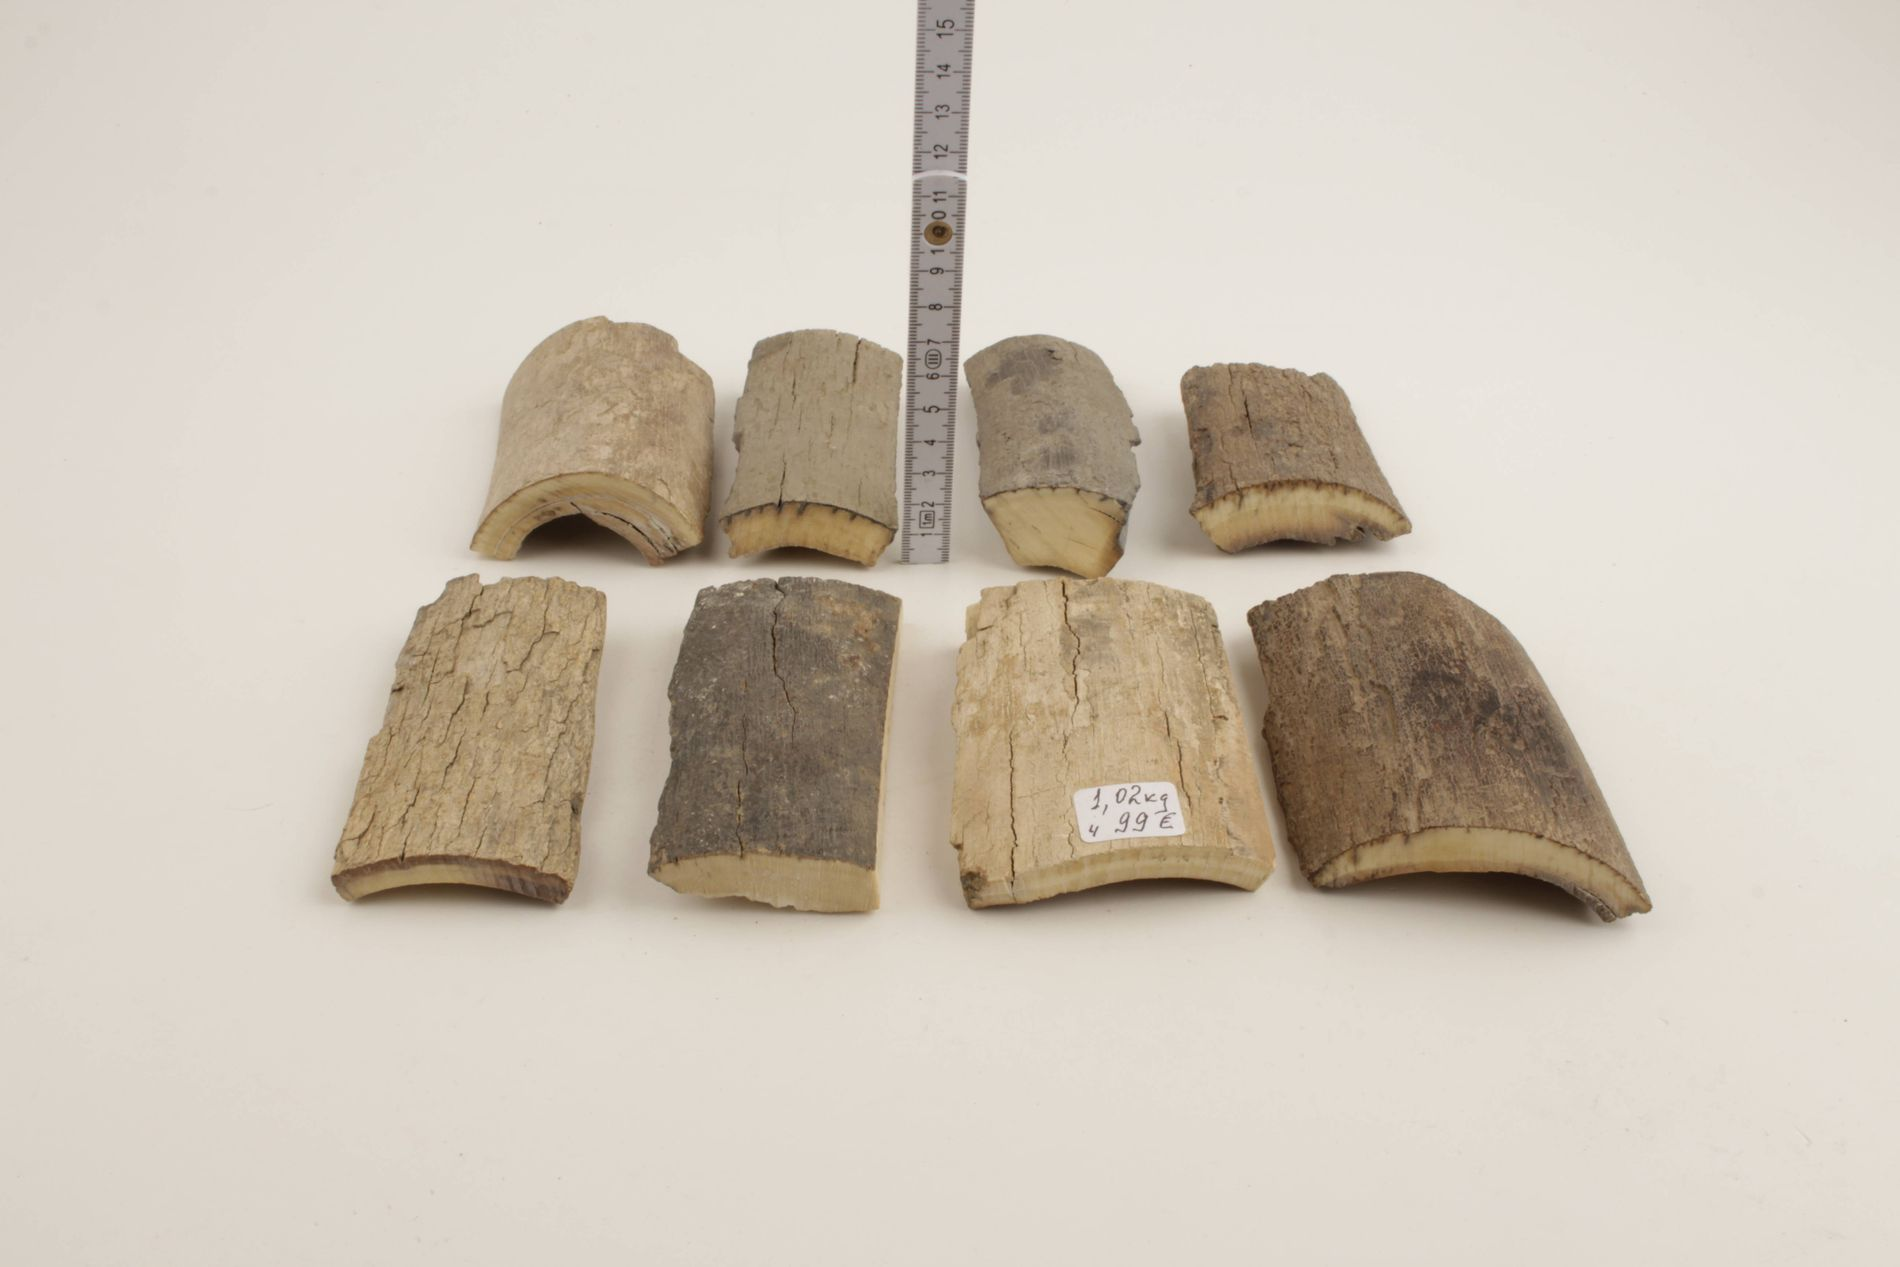 Untreated mammoth bark pieces